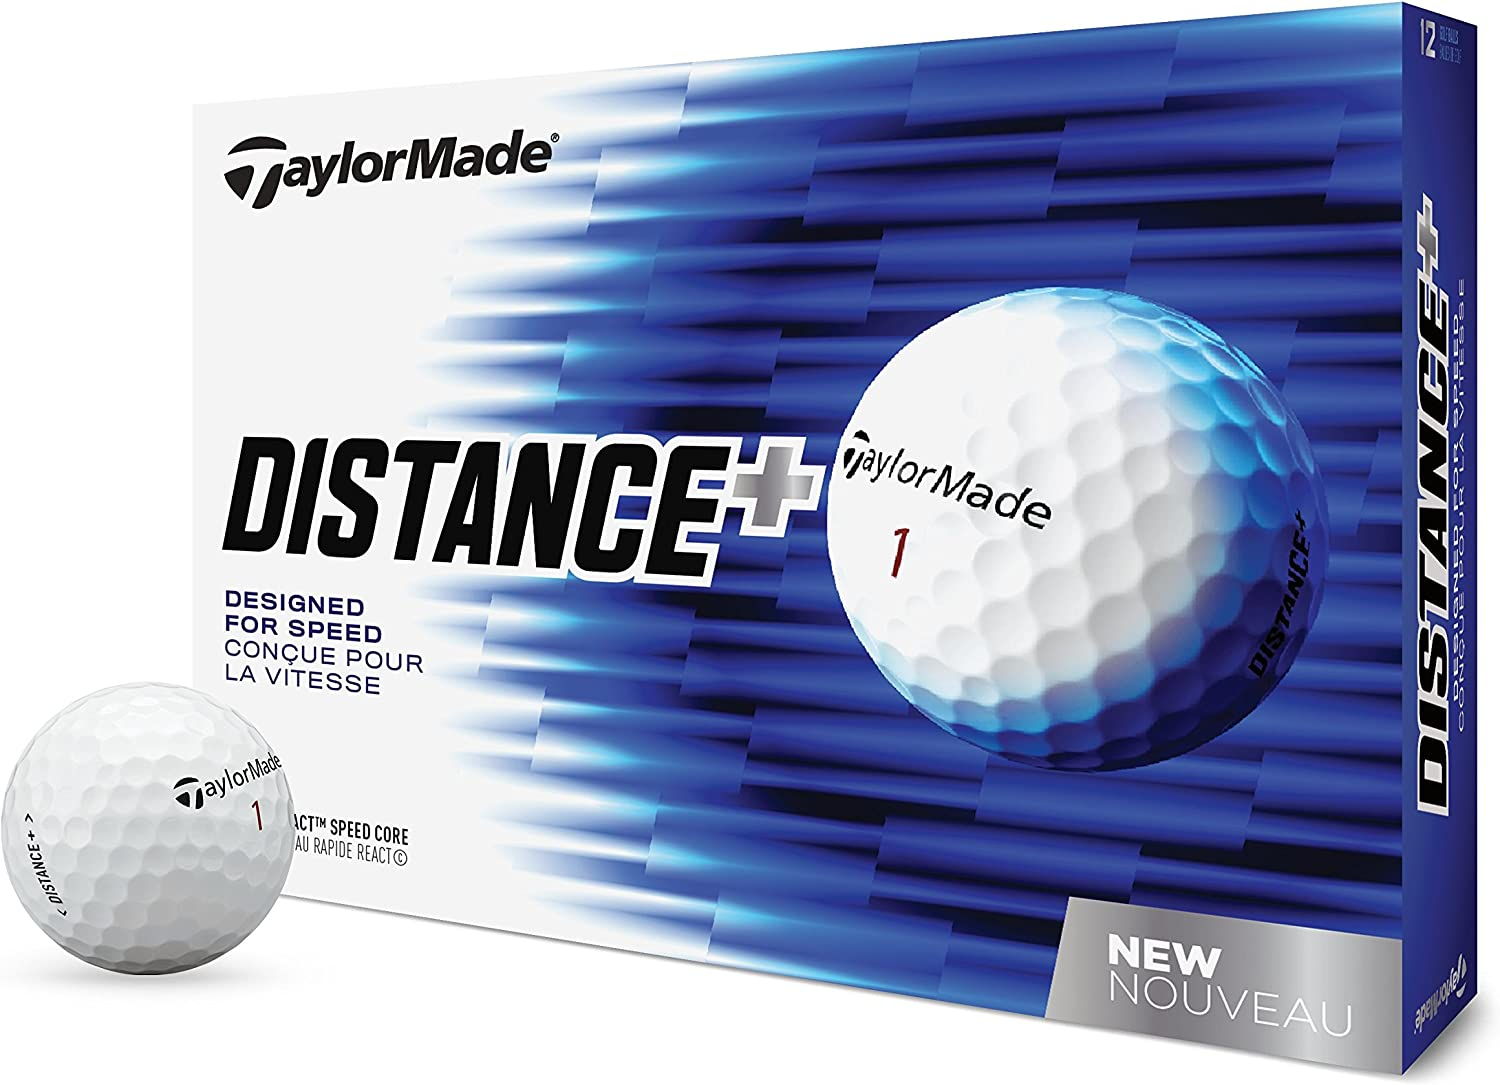 Amazon.com : TaylorMade 2018 Distance+ Golf Ball, White (One Dozen ...